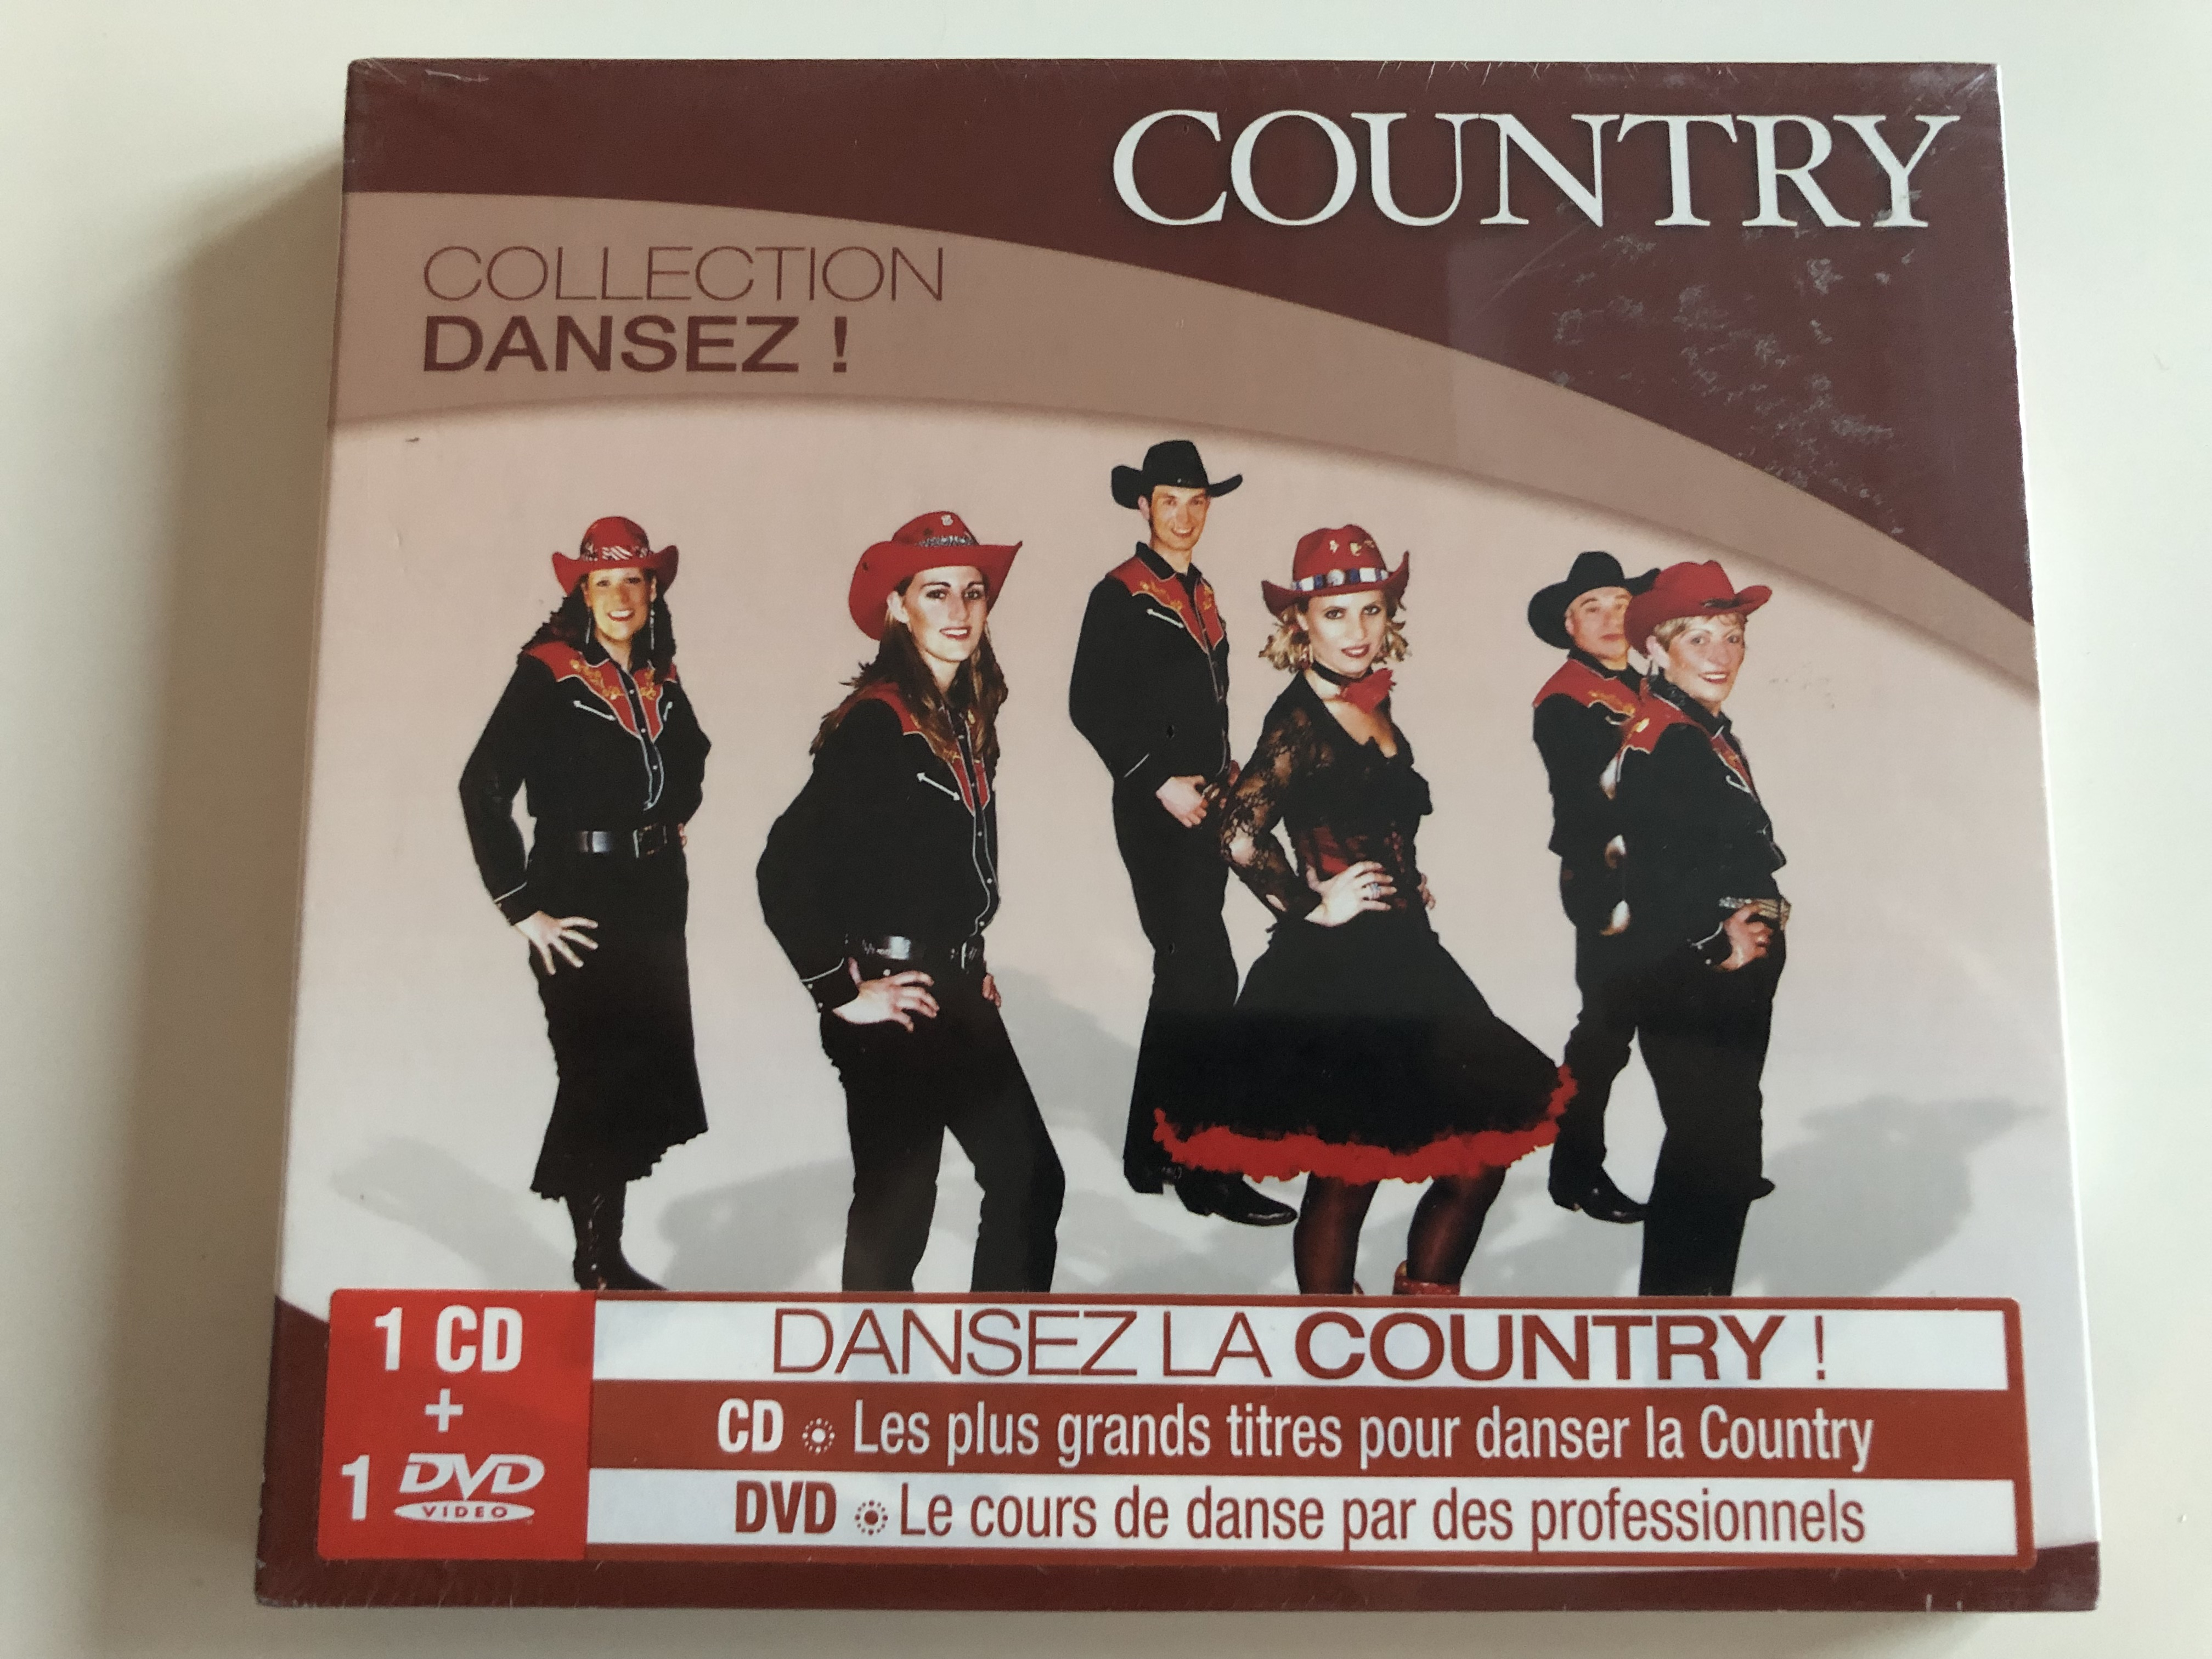 country-collection-dansez-dansez-la-country-country-dance-collection-learn-the-country-dance-the-hedgehogs-directed-produced-by-jean-luc-barreau-audio-cd-dvd-2009-wag737-1-.jpg